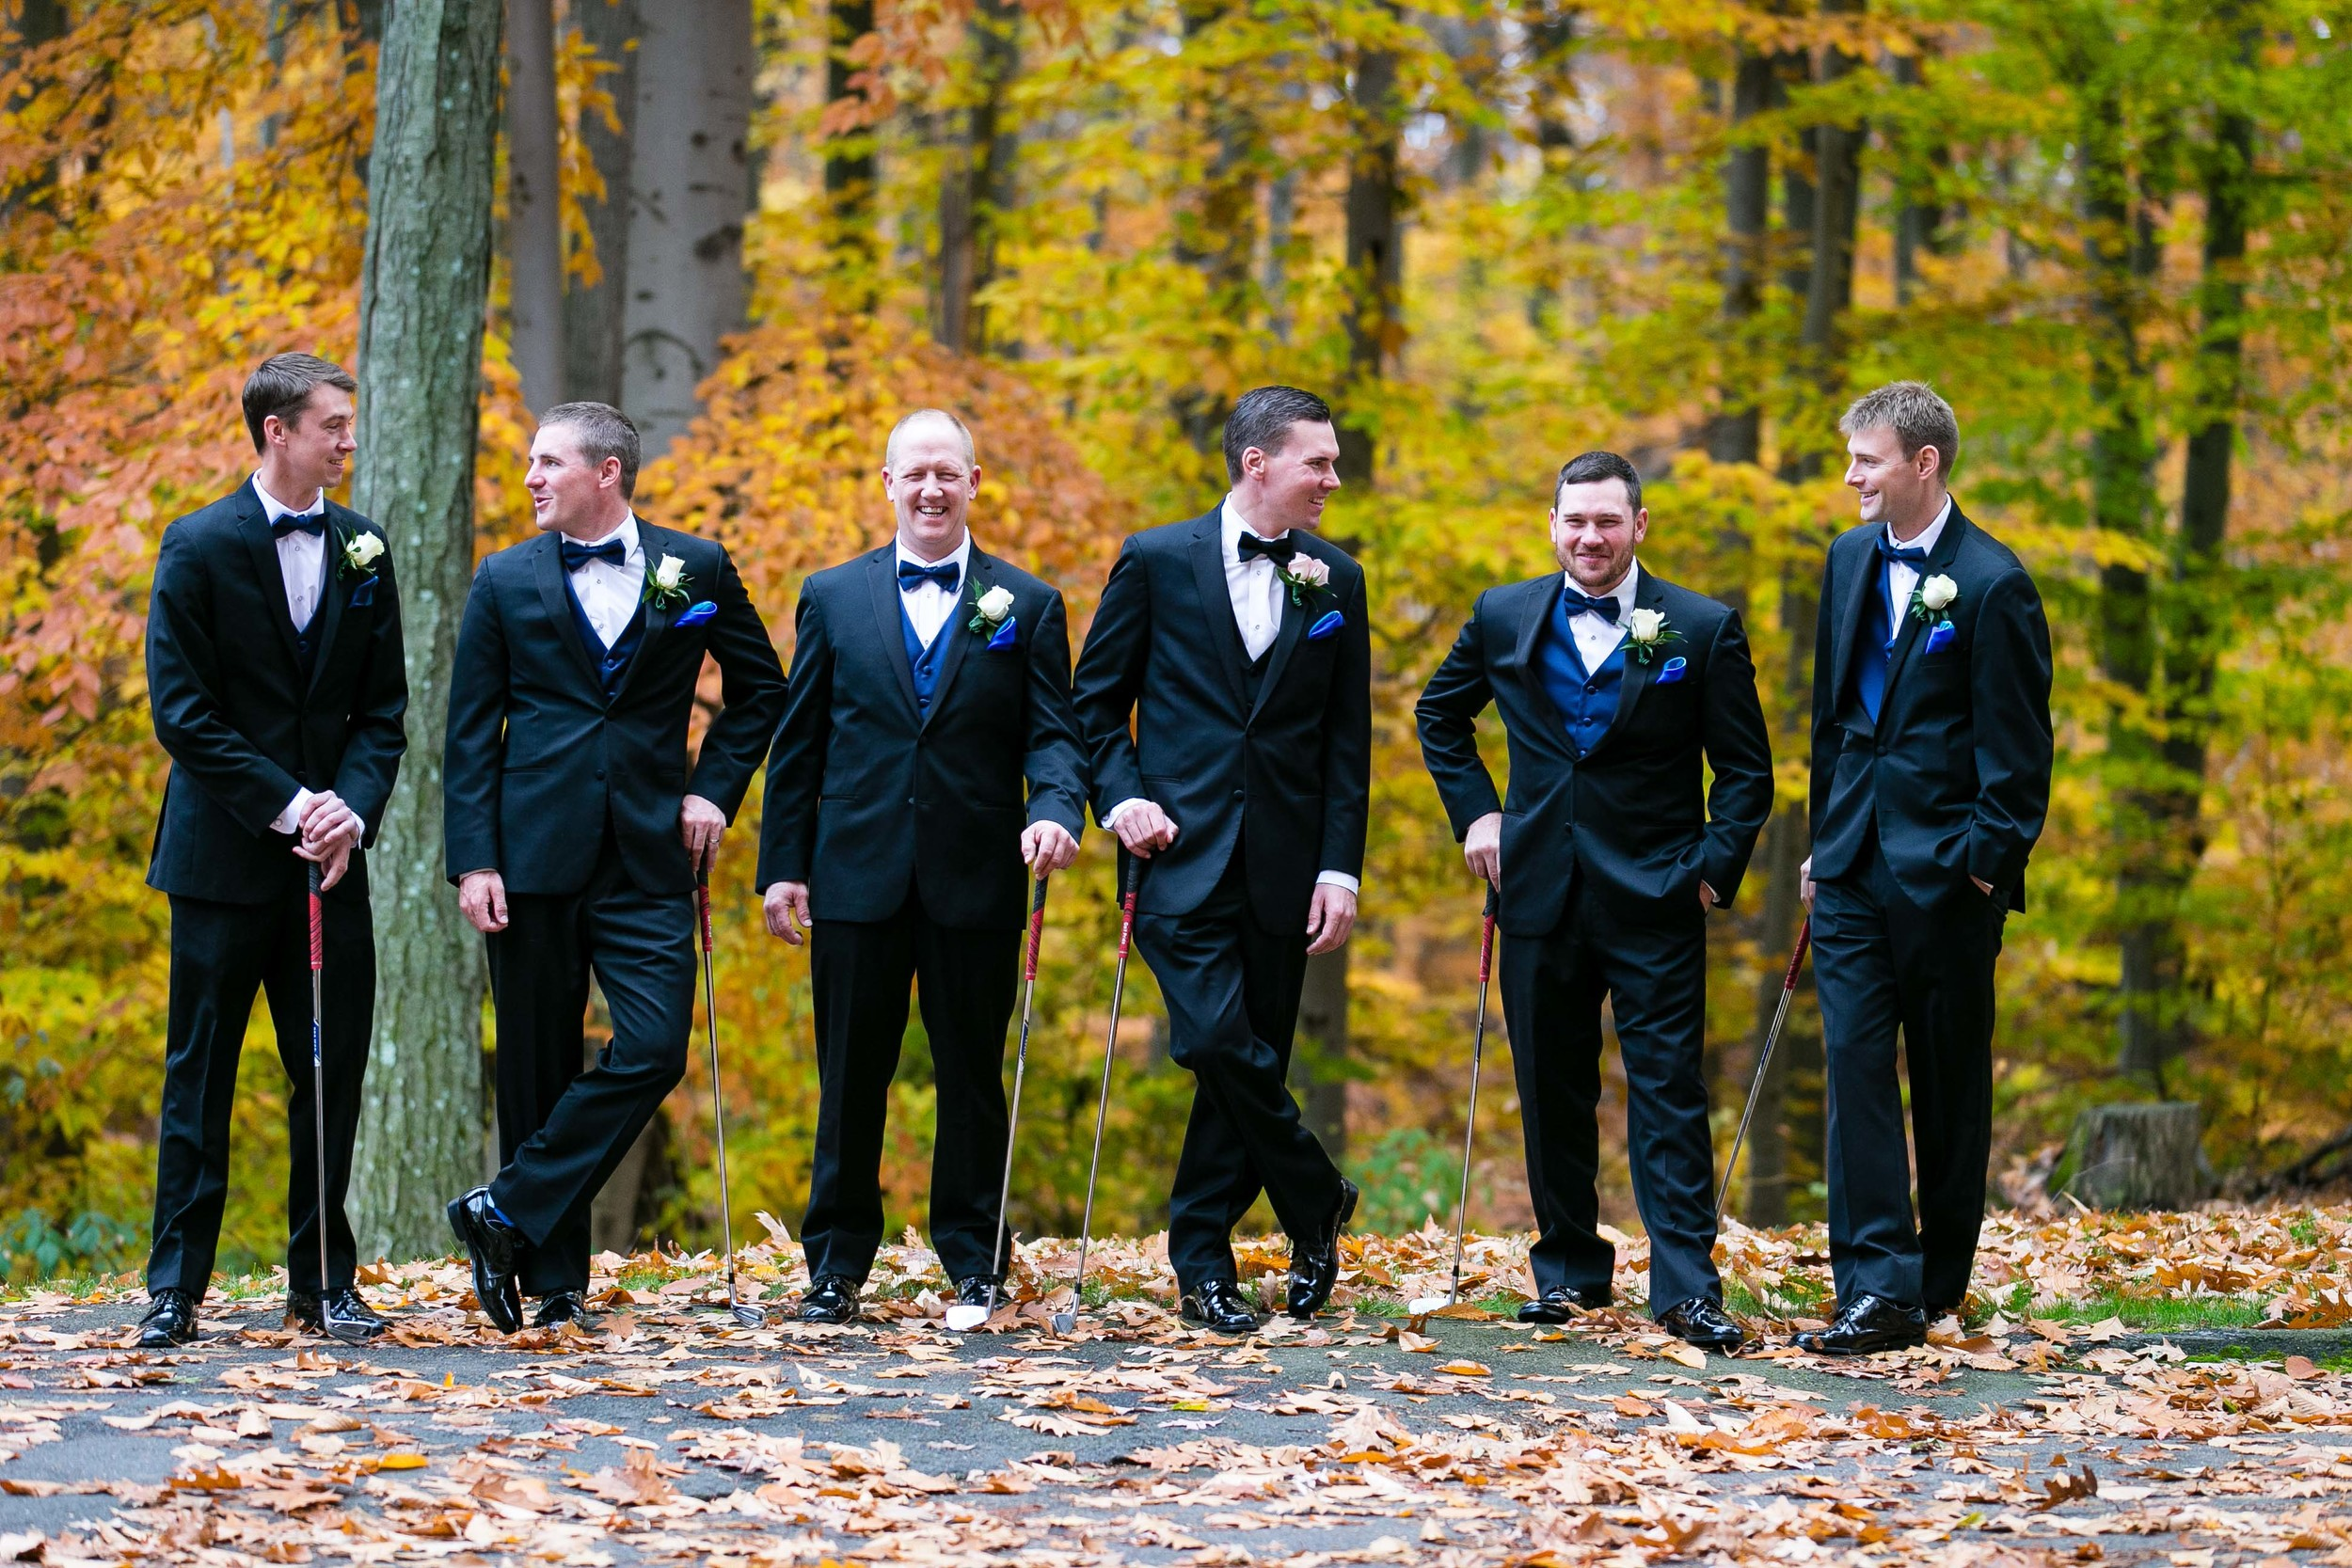 American-Romantic-Wedding-Riverview-Simsbury-Documentary-Photography-by-Jacek-Dolata.jpg